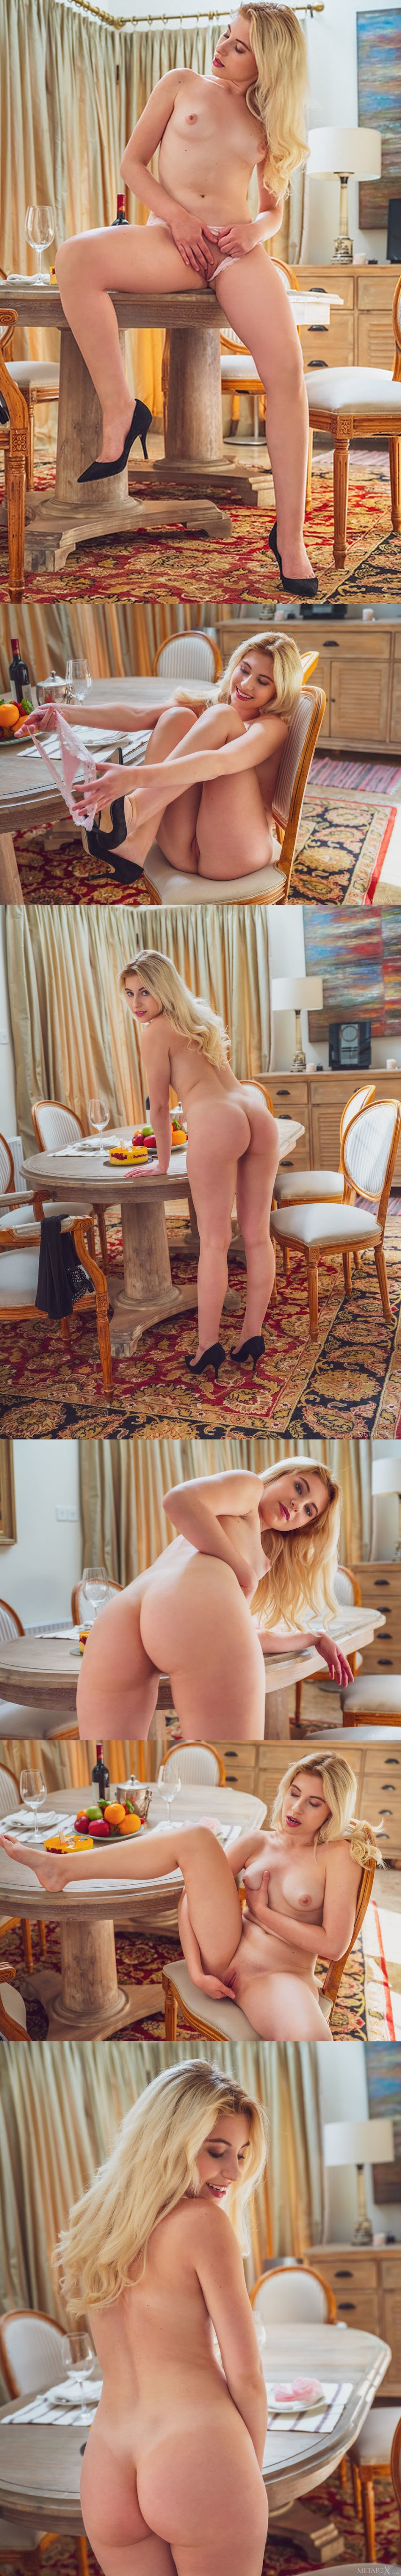 [MetArtX] Lilly Bella - Ready For Anniversary